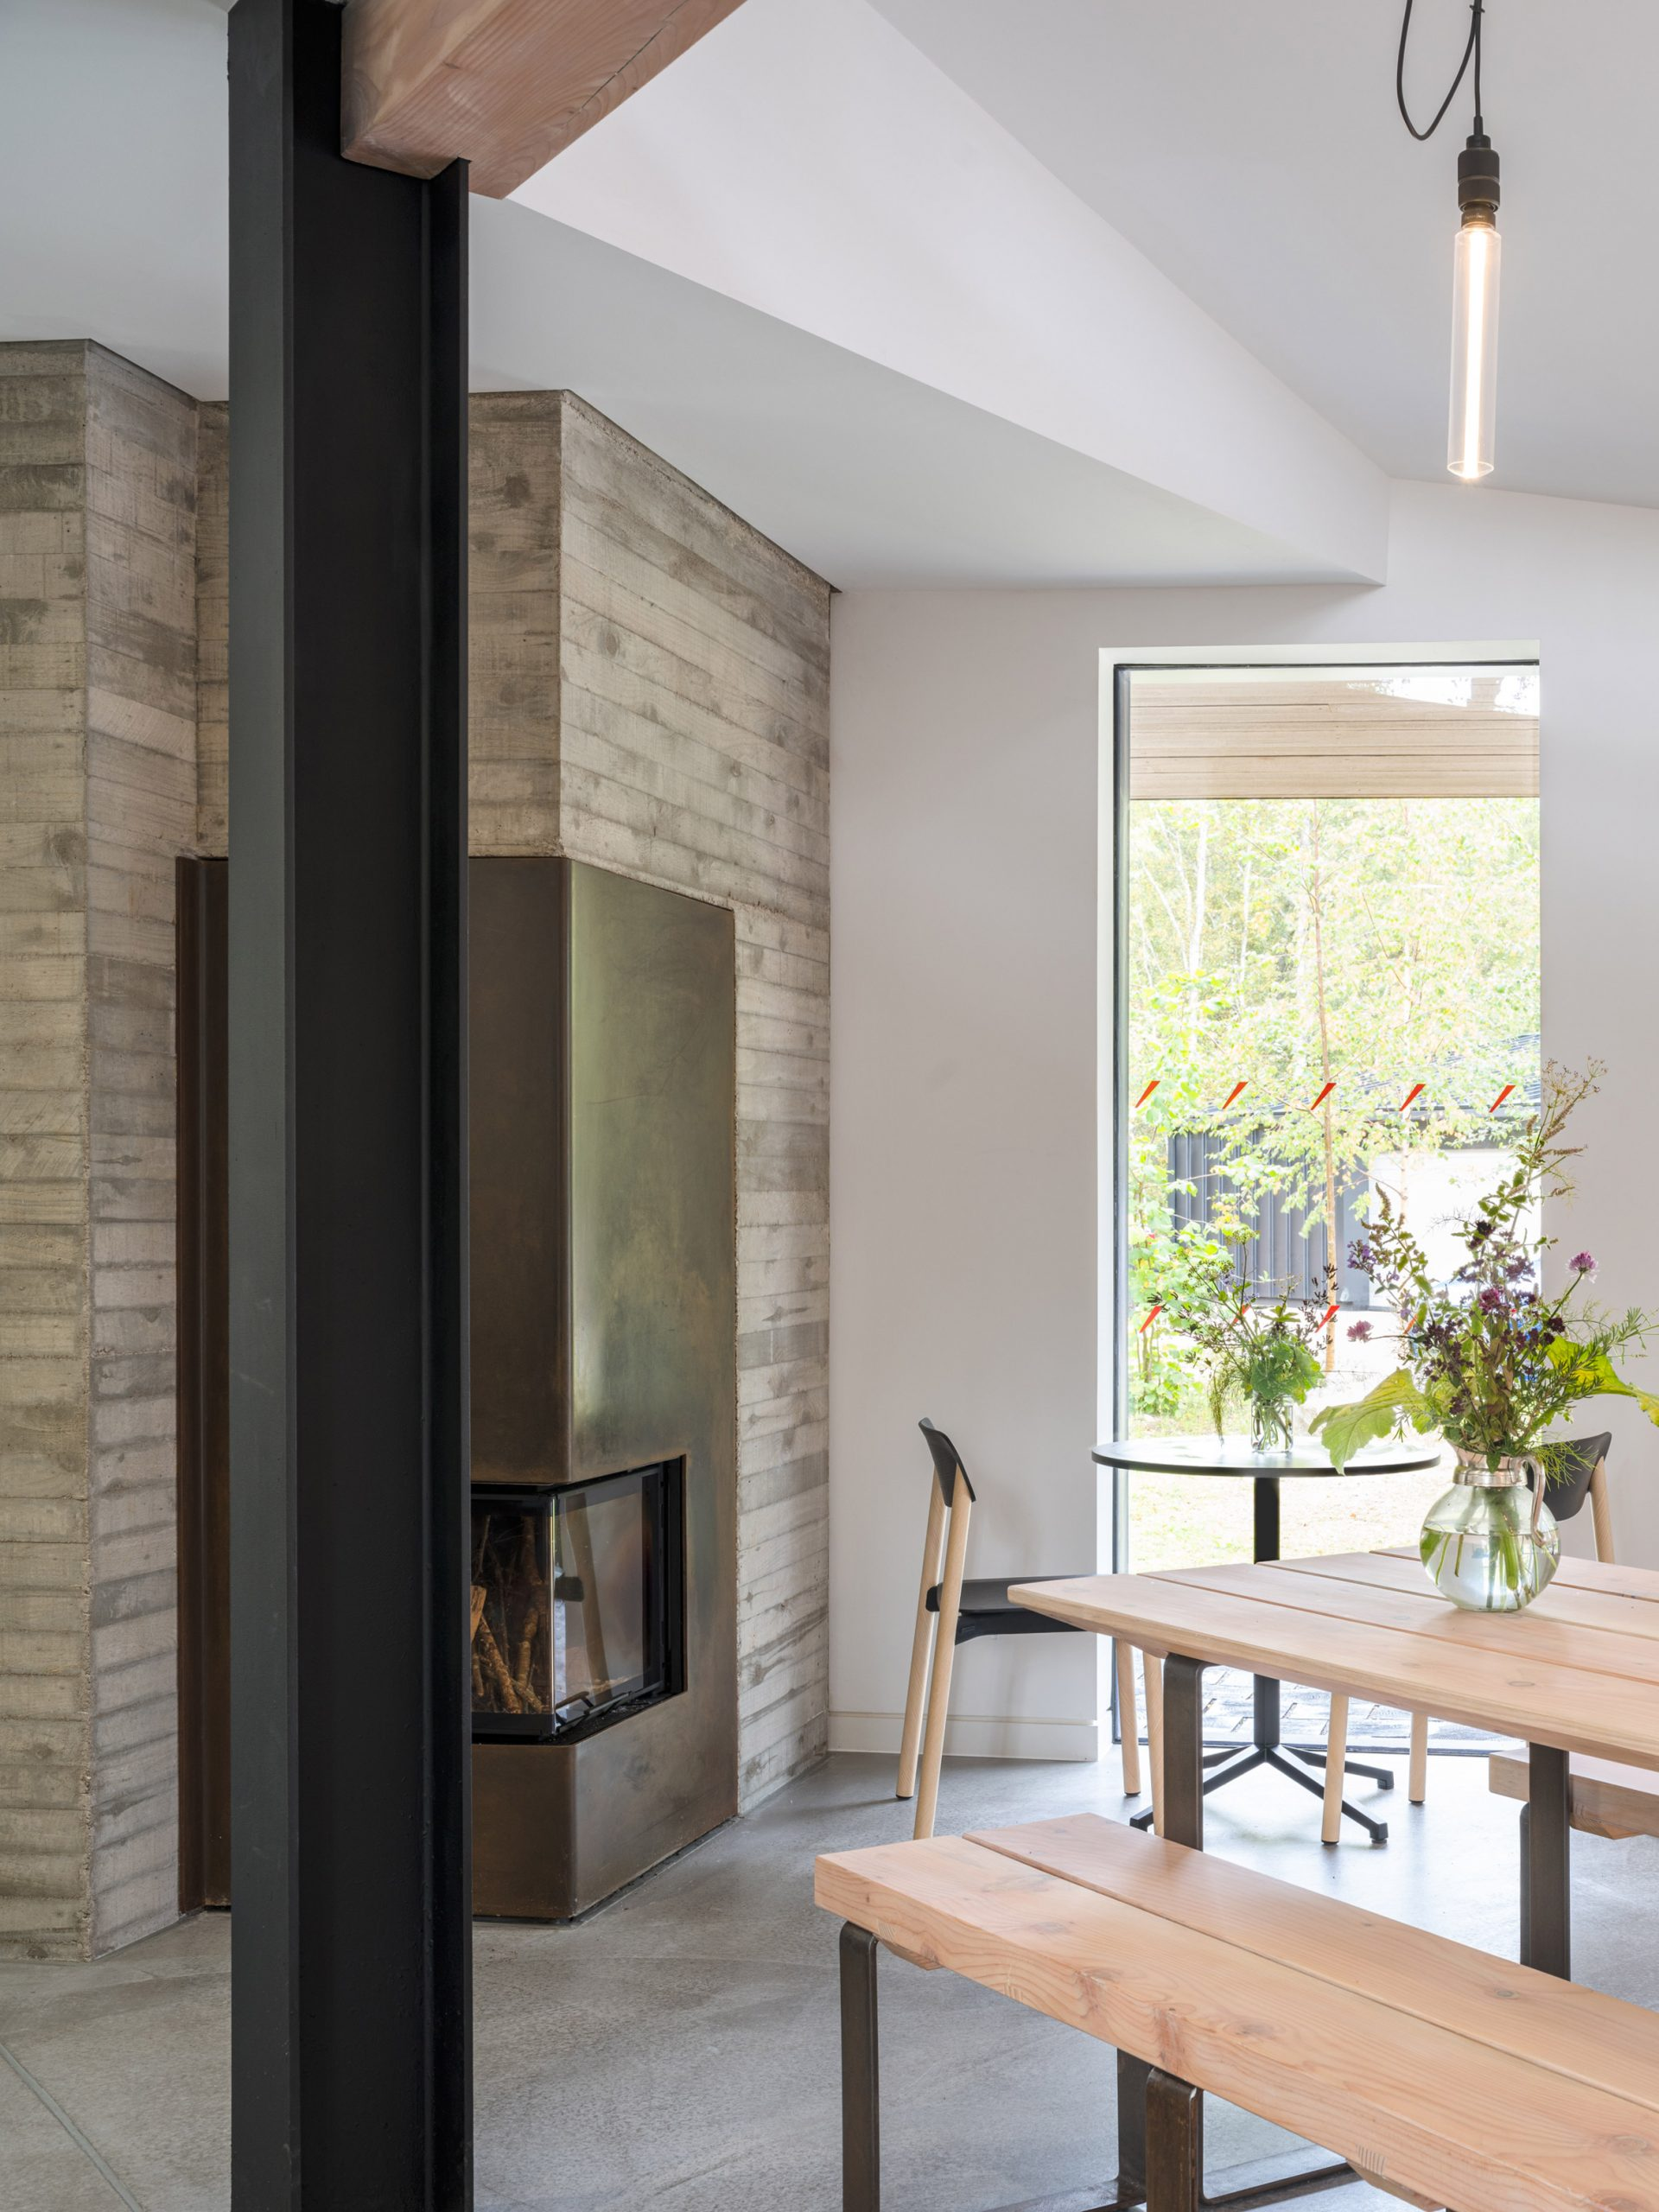 Cafe interior at Quarry Studios by Moxon Architects